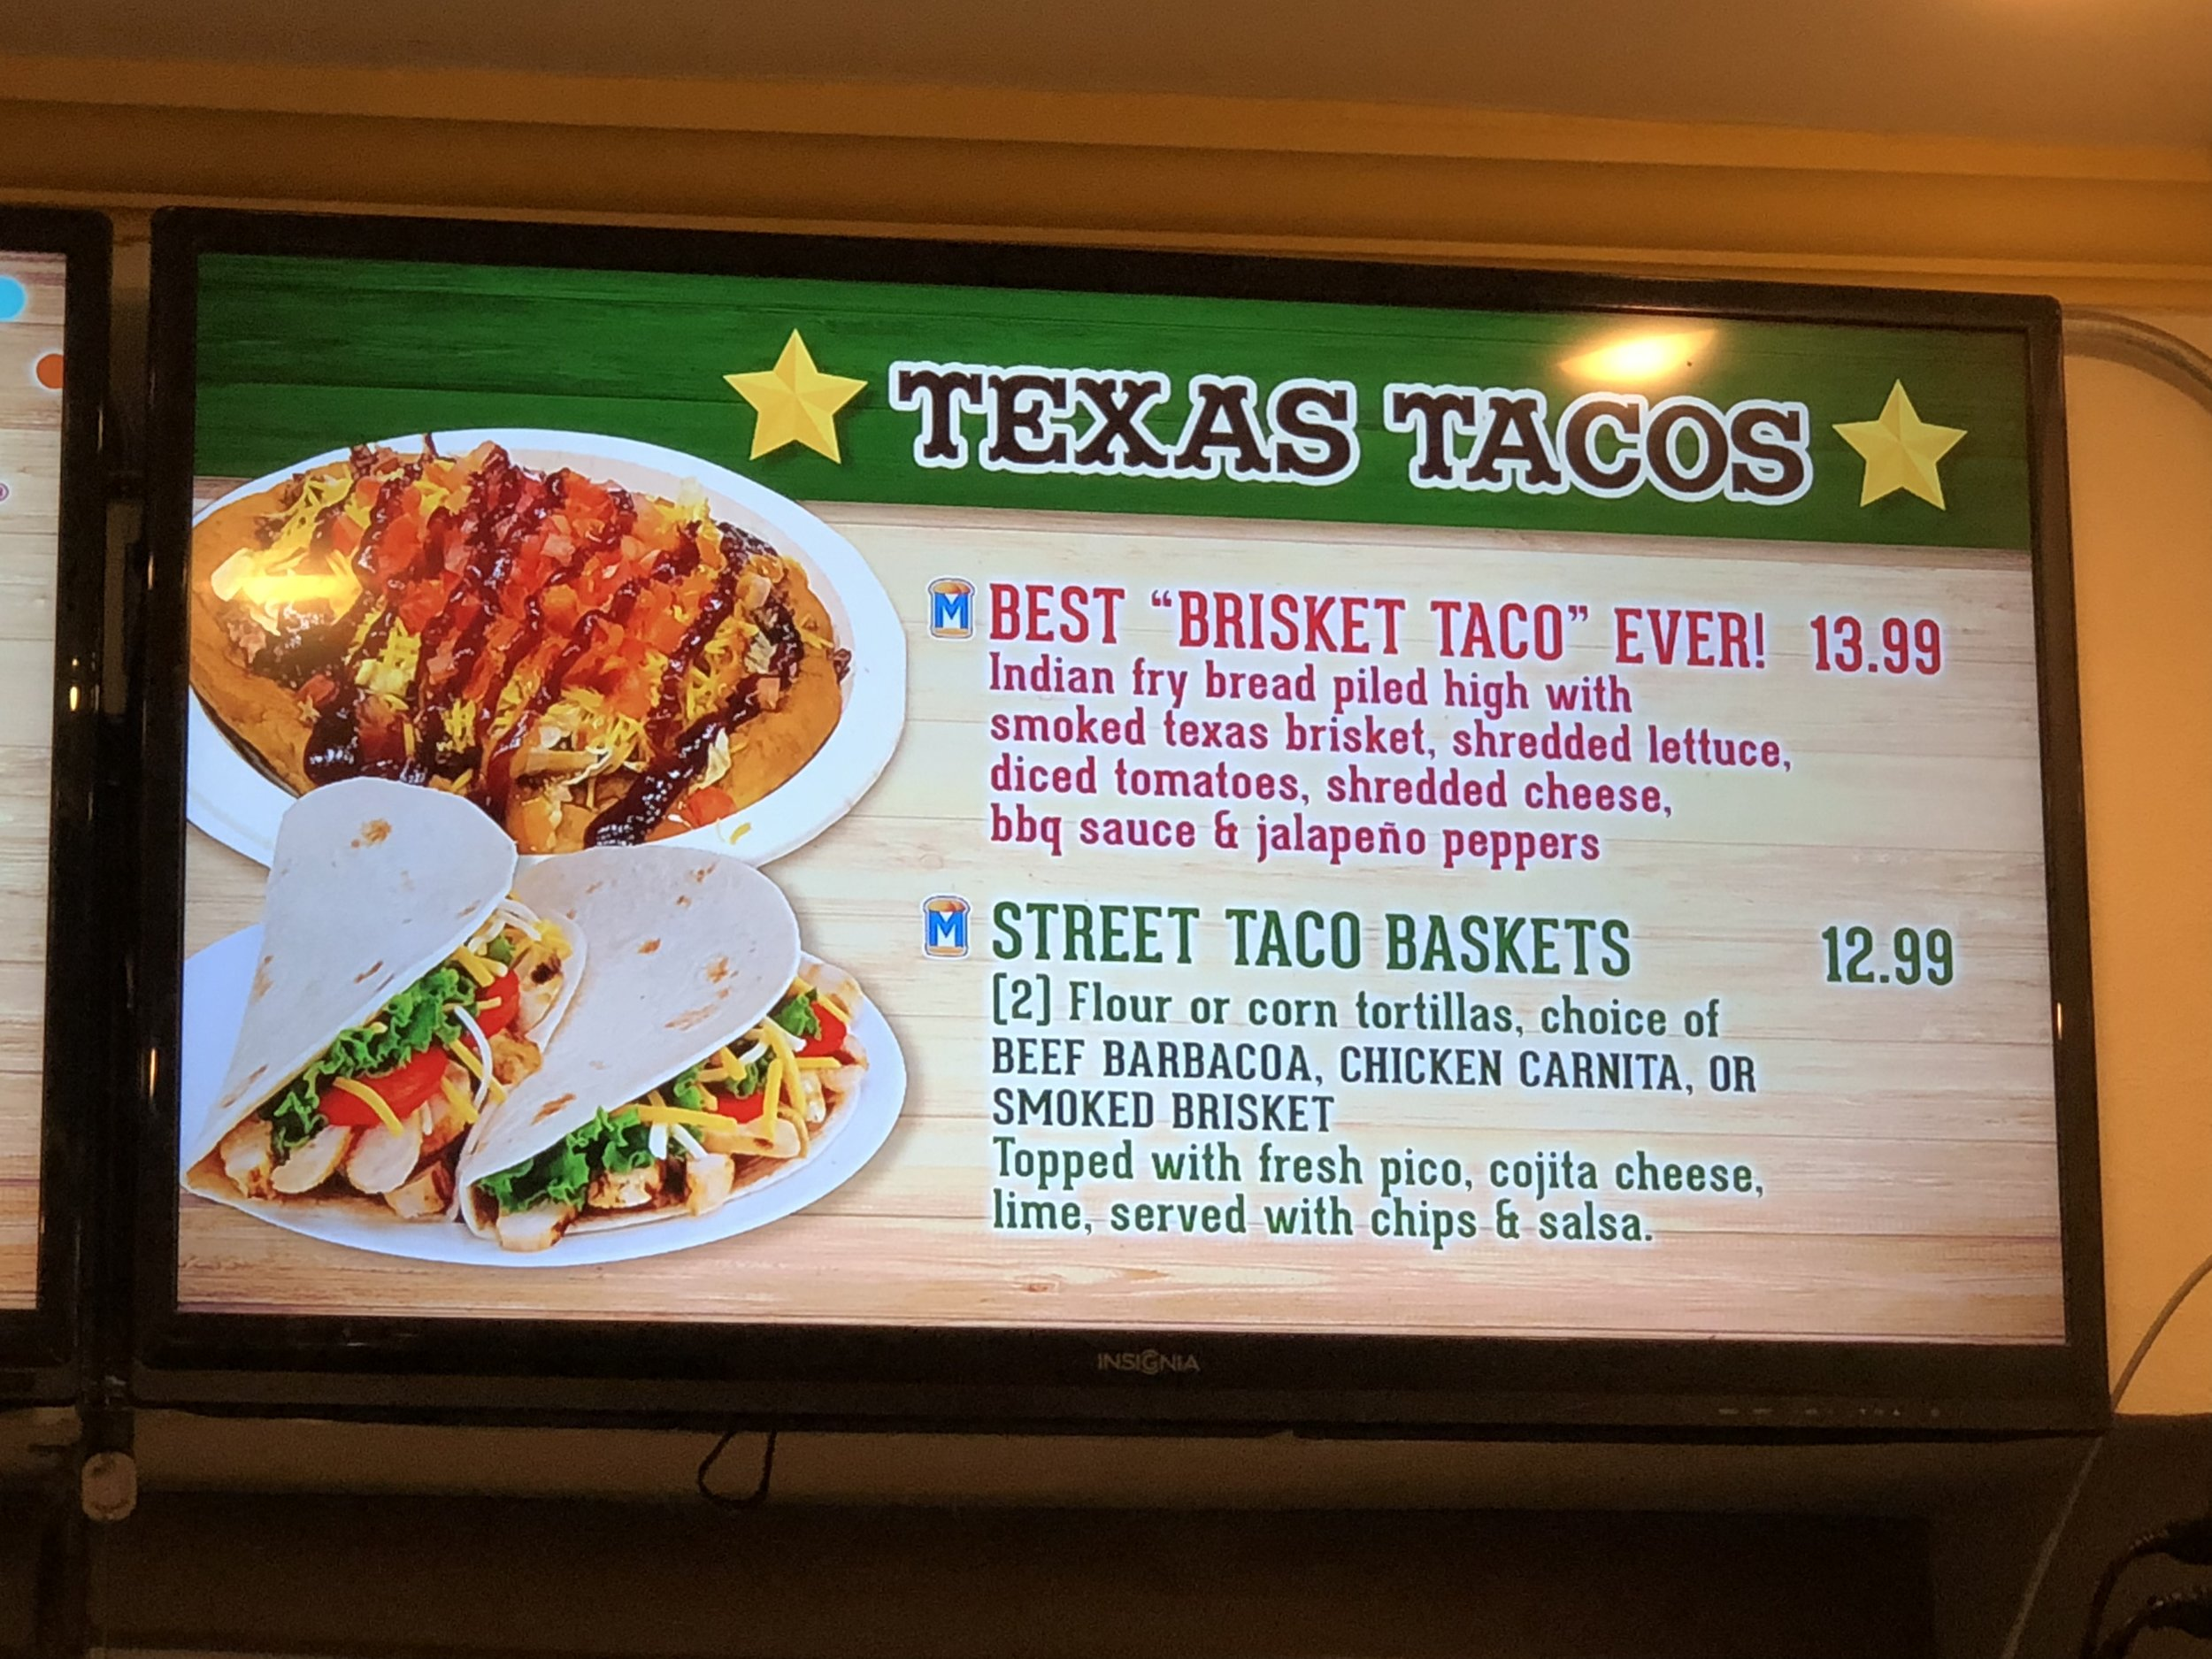 Main meal items at Texas Taco Bar.